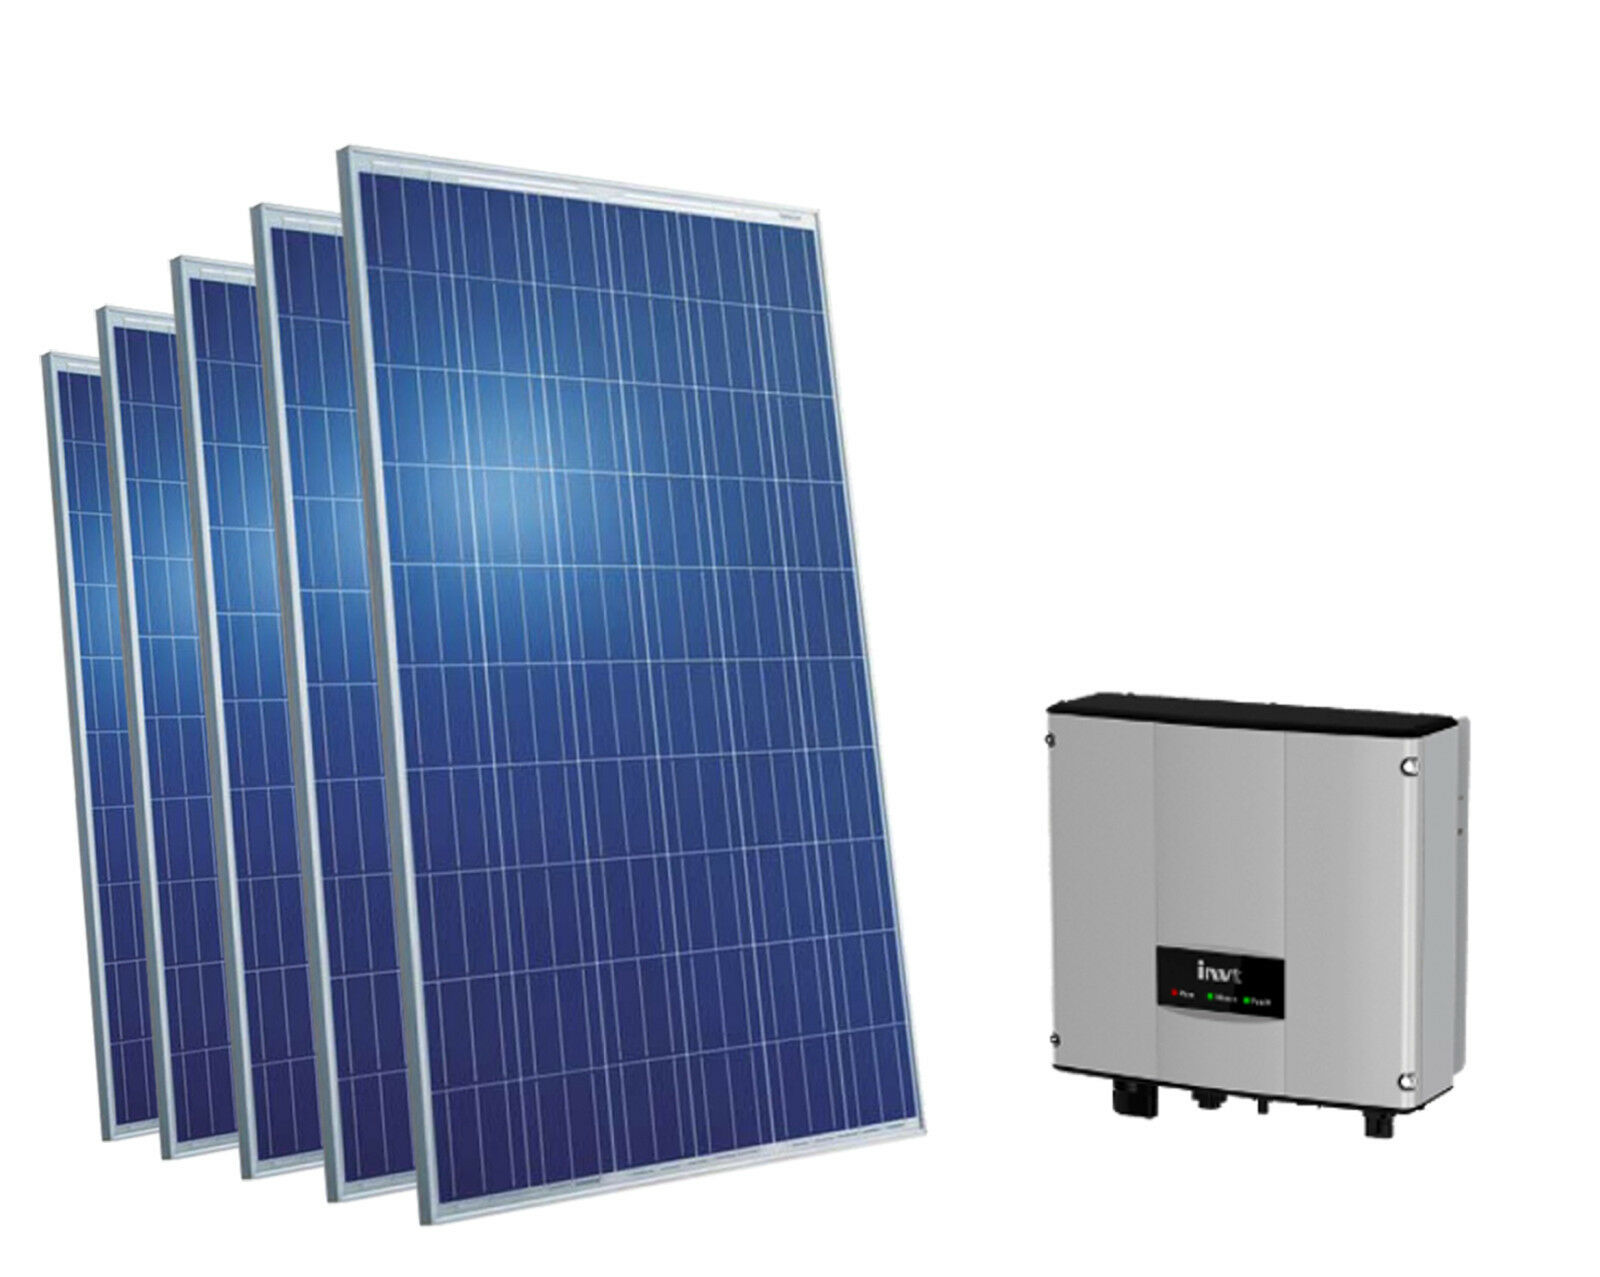 1 35 kw plug and play solaranlage pv komplettpaket 5. Black Bedroom Furniture Sets. Home Design Ideas